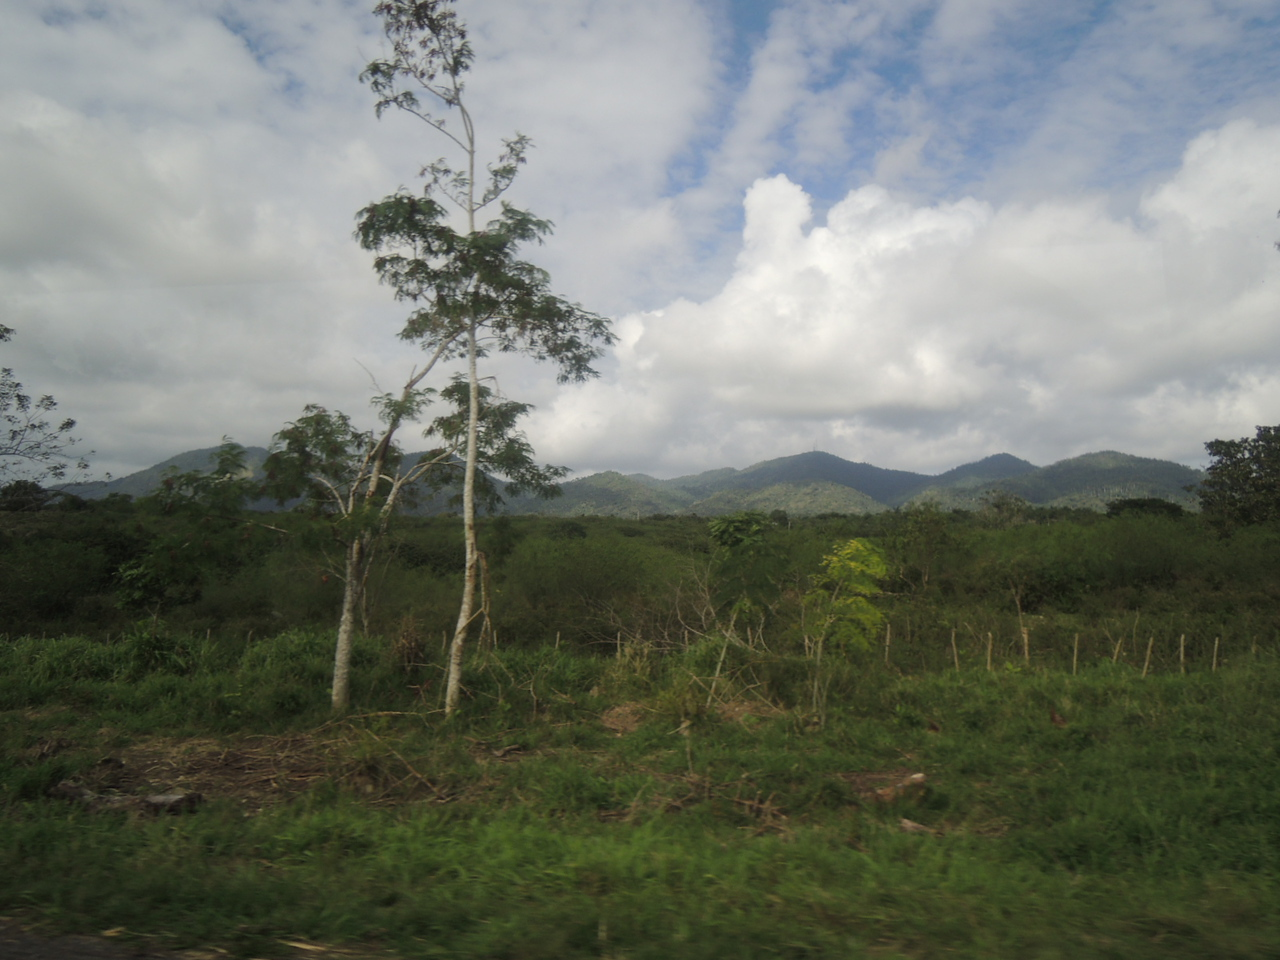 View from the bus window as we were in the countryside West of Havana.